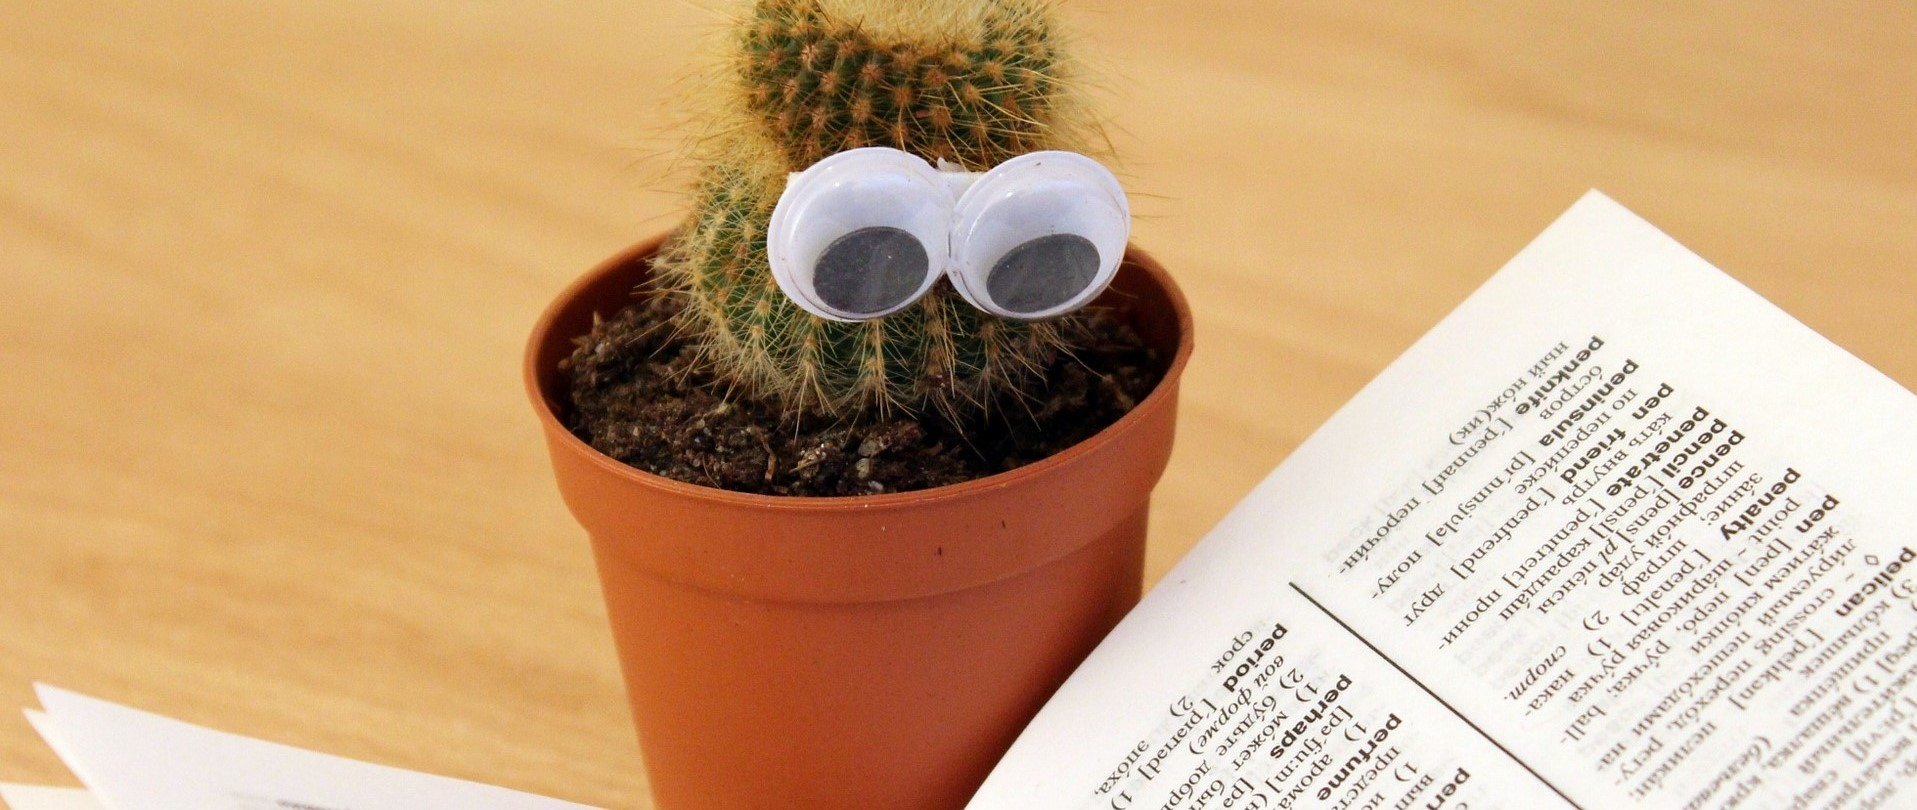 Cactus in flower pot reading Behavioral Health Terms